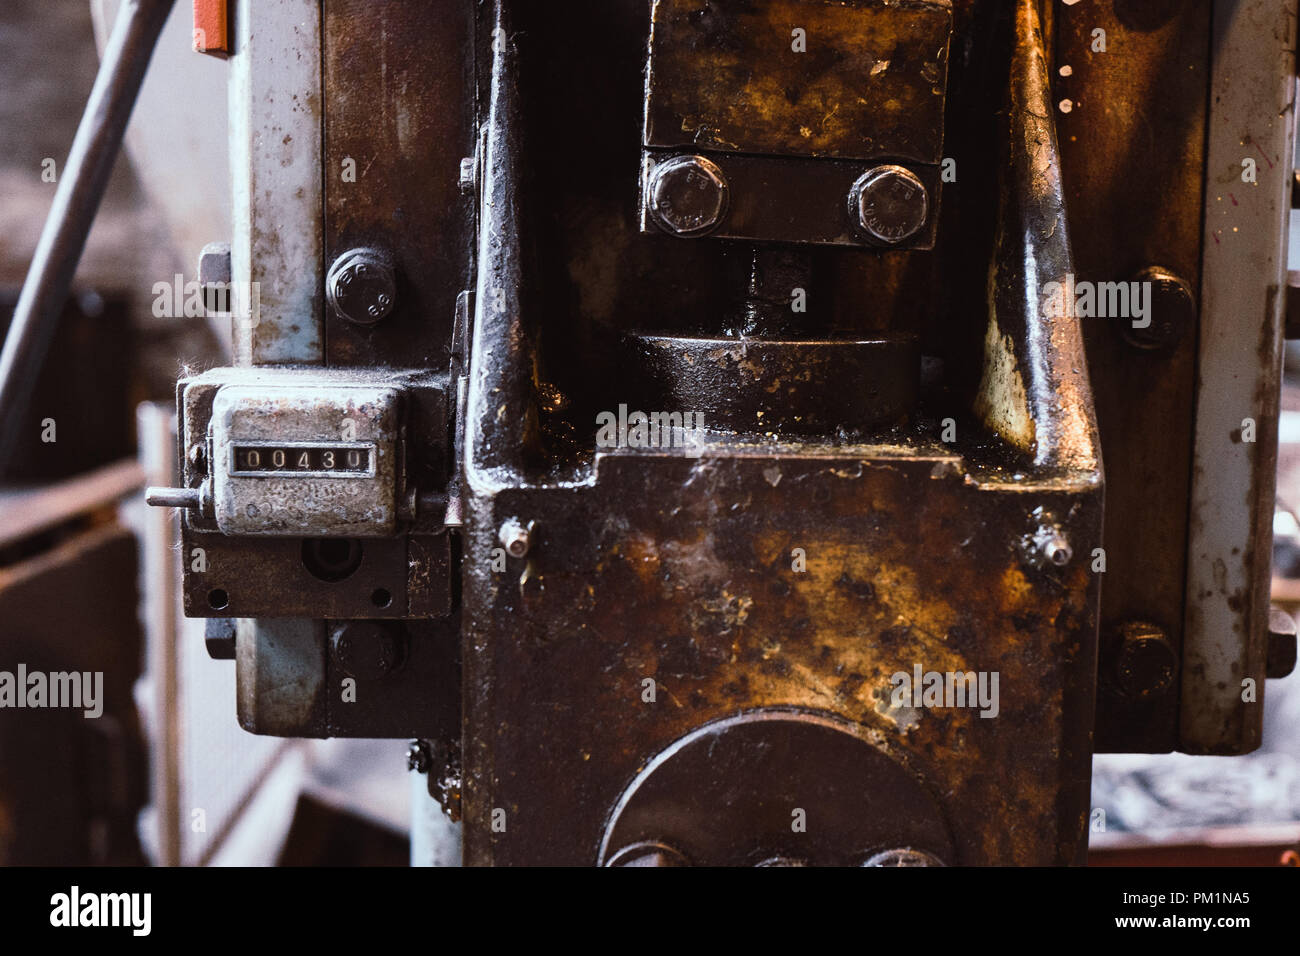 Machinery in old factory - Stock Image